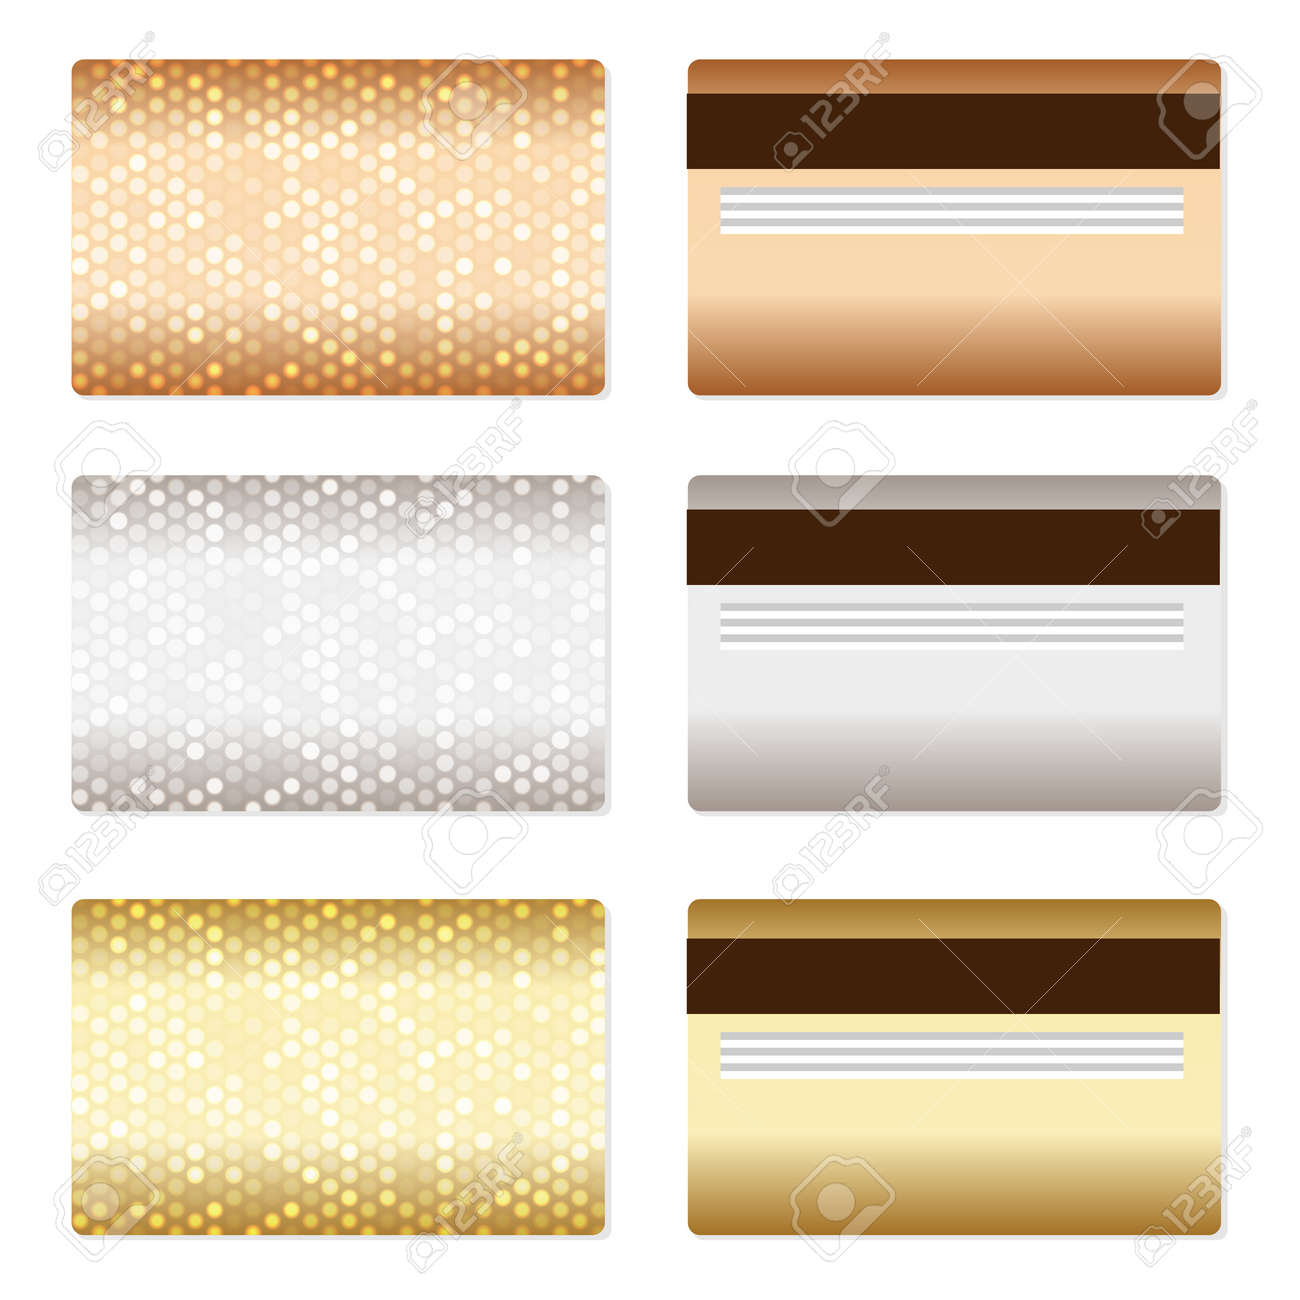 Design of discount card - Set Of Luxury Metallic Backgrounds Bronze Silver Gold For Discount Credit Gift